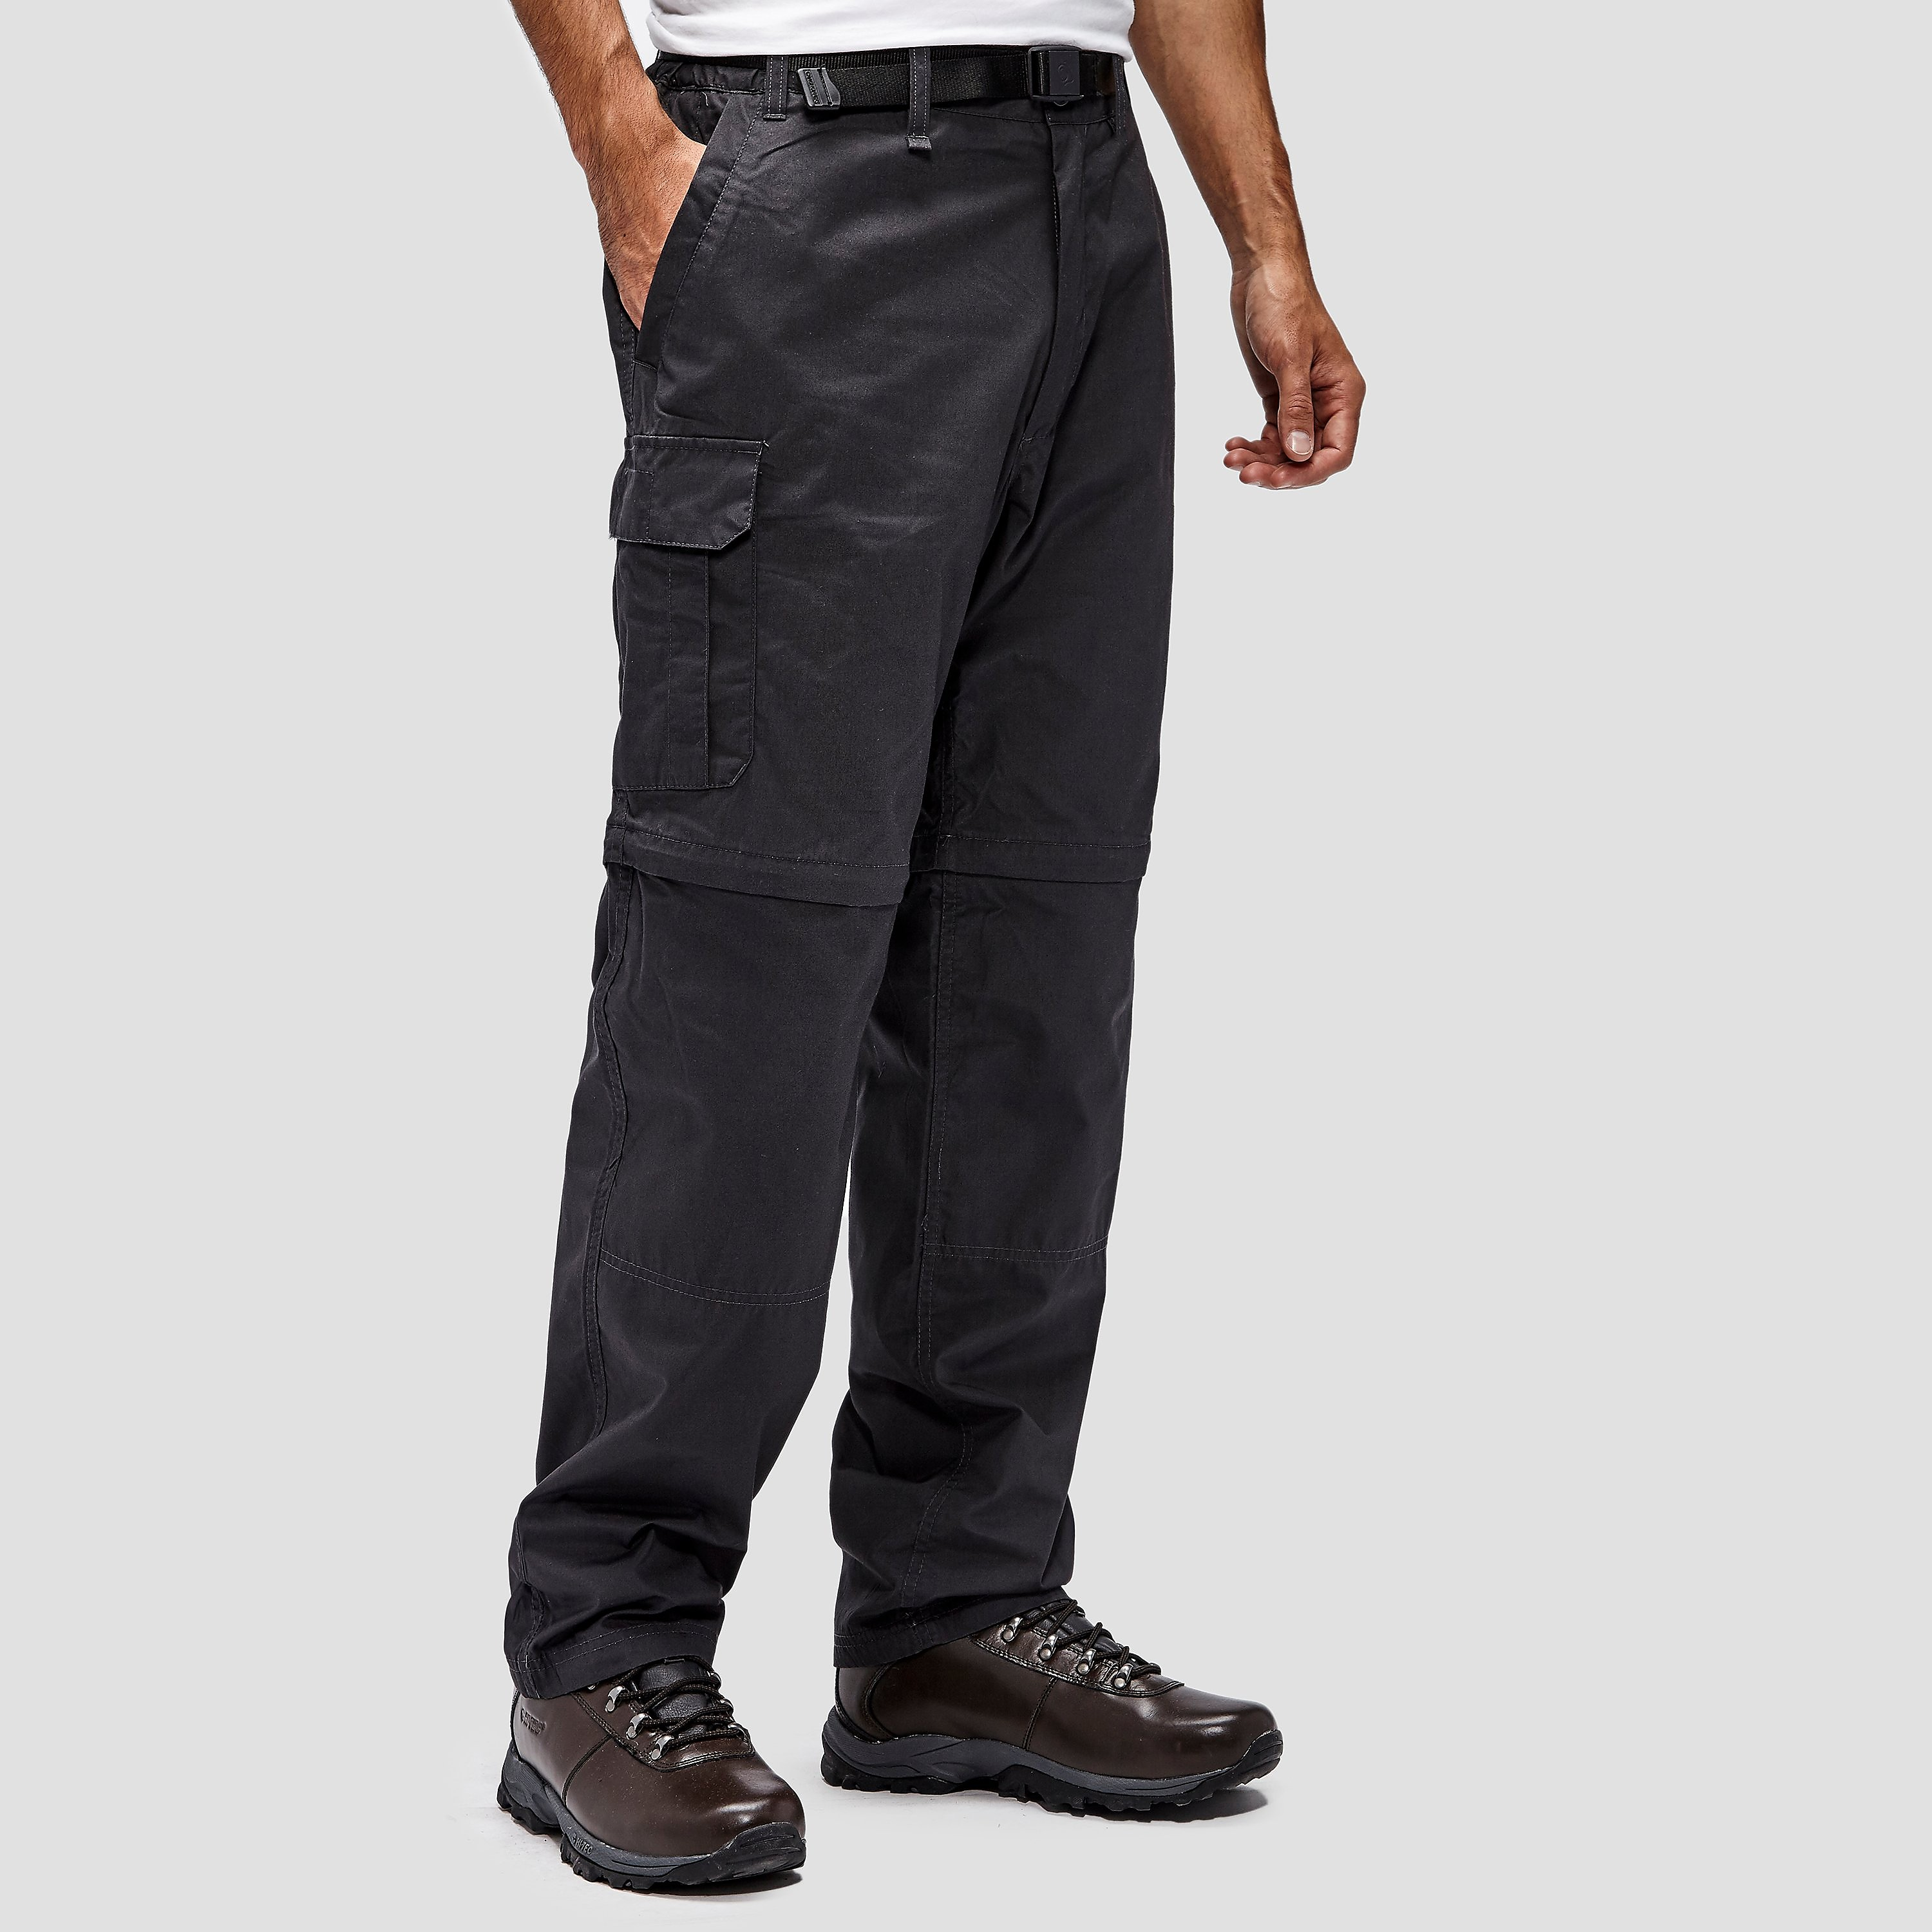 CRAGHOPPERS Craghoppers Kiwi Convertible Men's Trousers